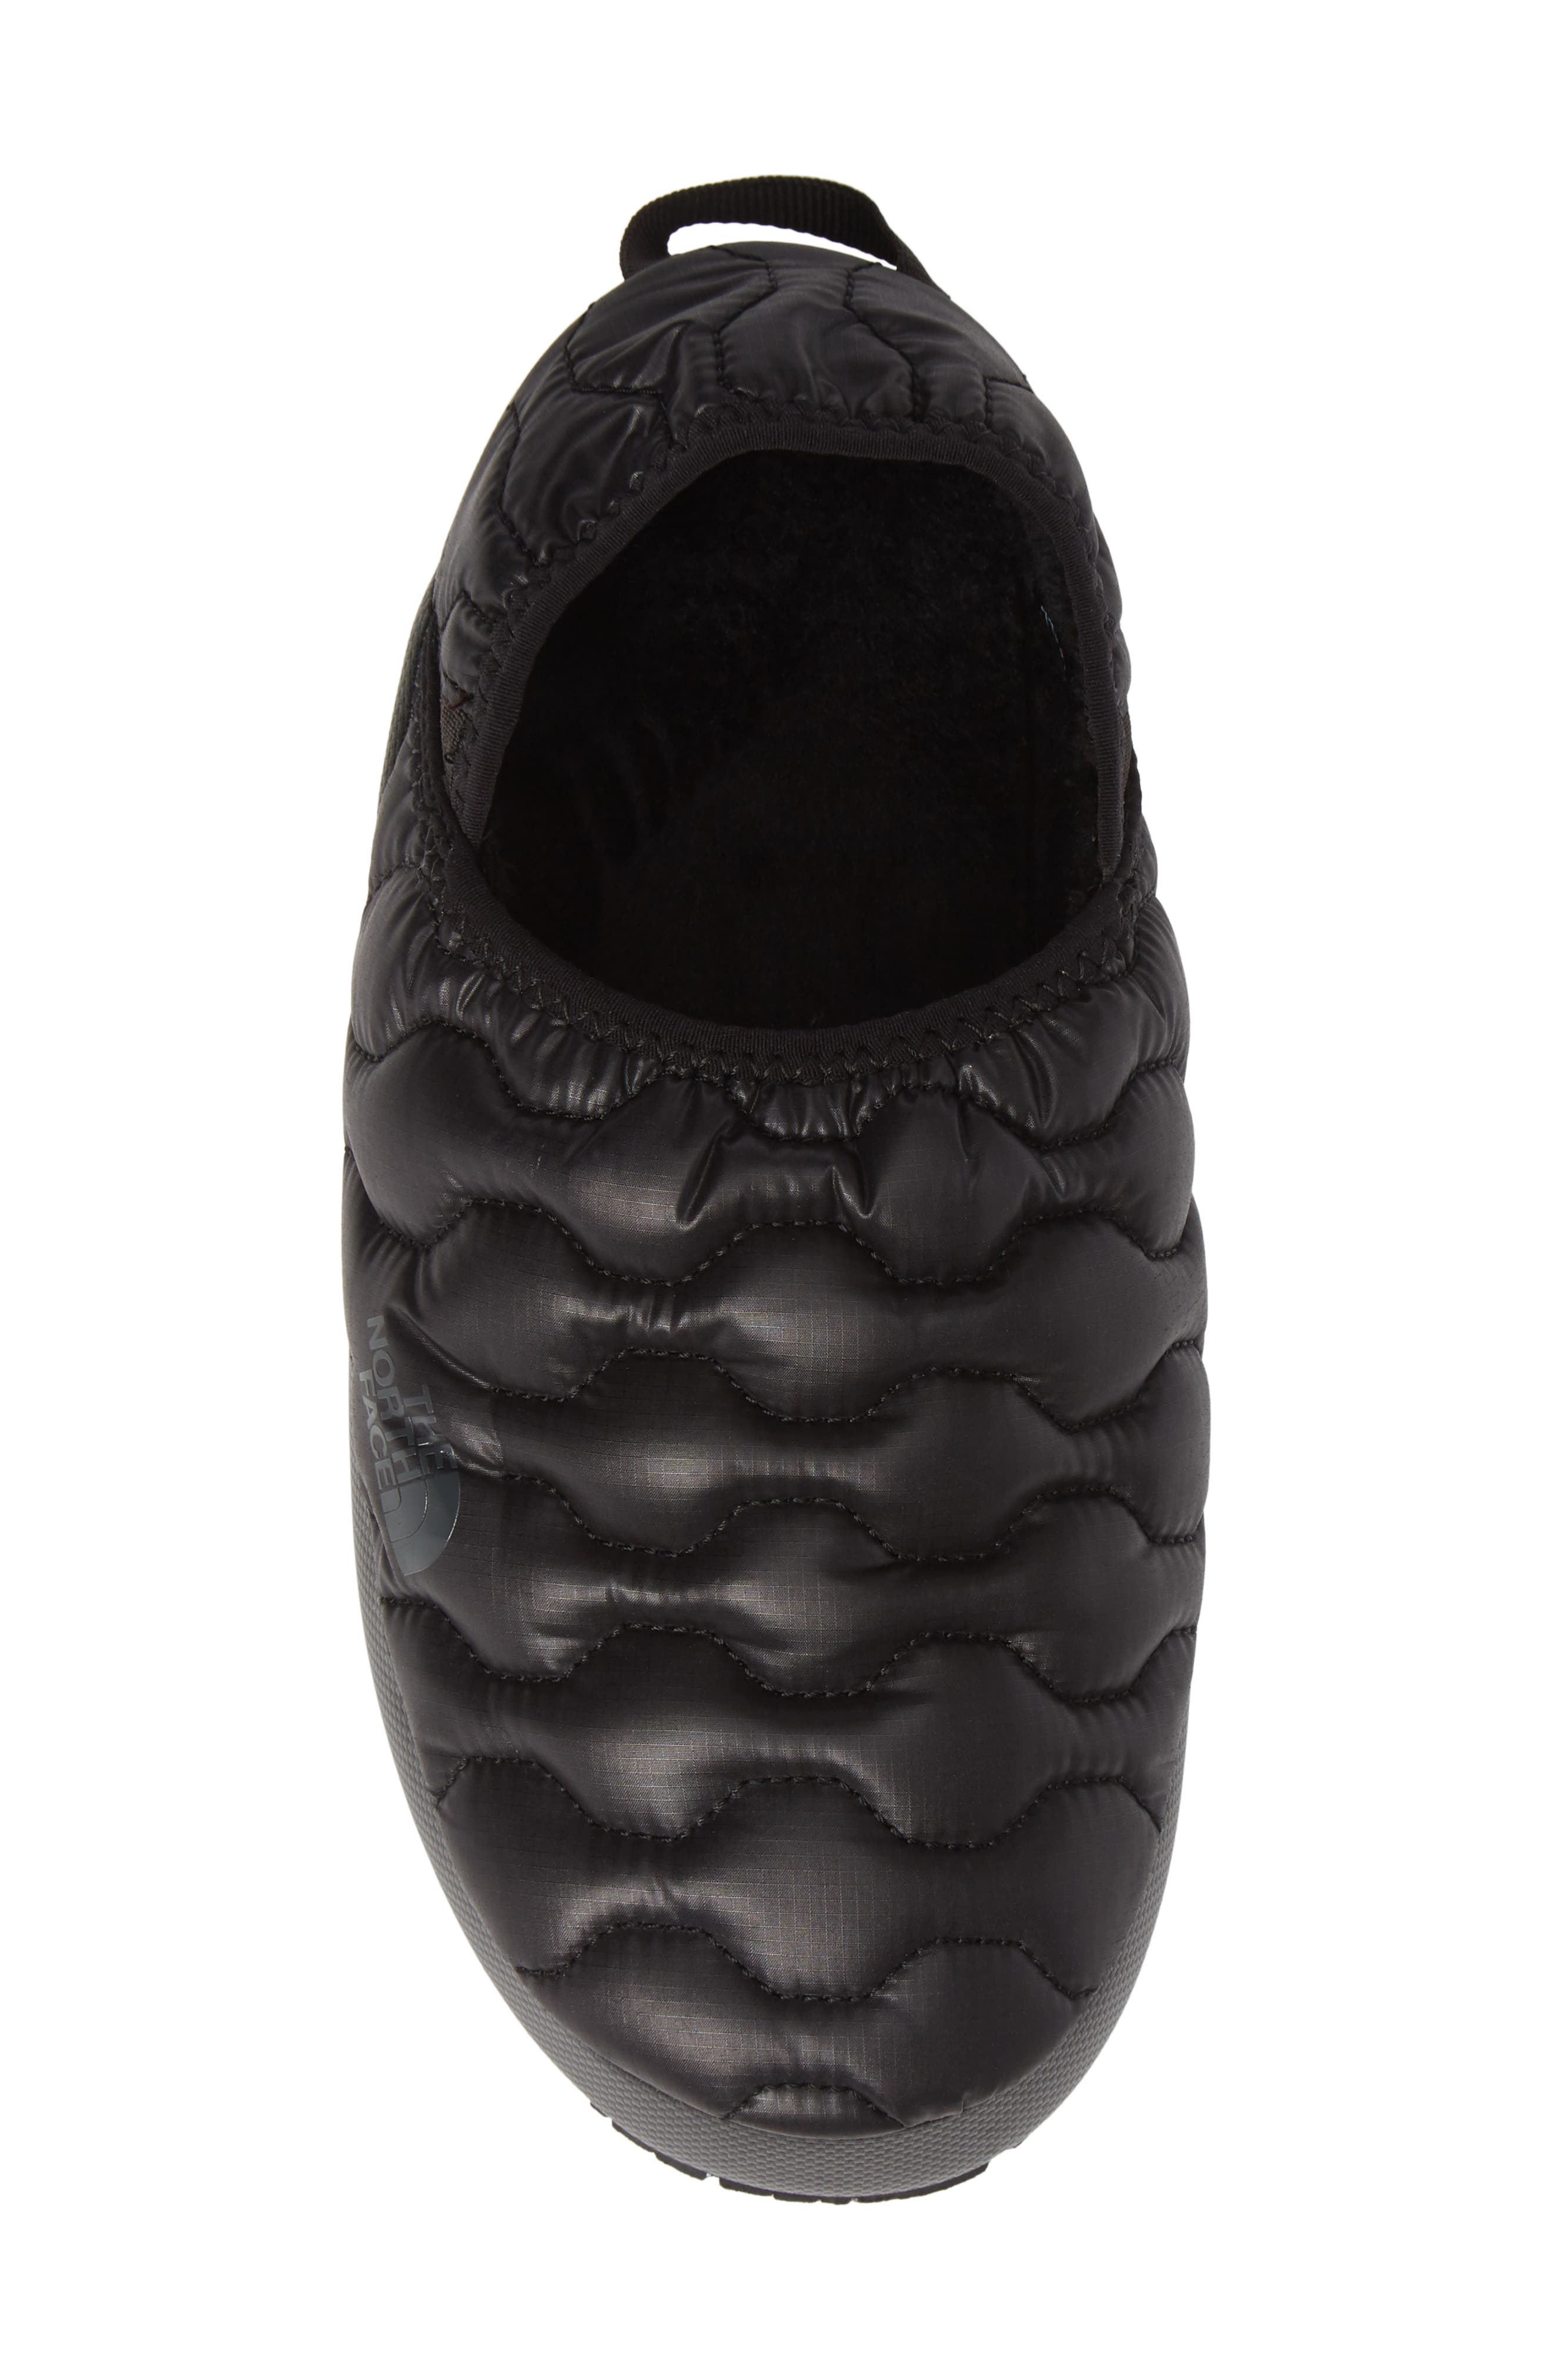 THE NORTH FACE, Thermoball<sup>™</sup> Water Resistant Traction Mule, Alternate thumbnail 5, color, SHINY BLACK/ BELUGA GREY